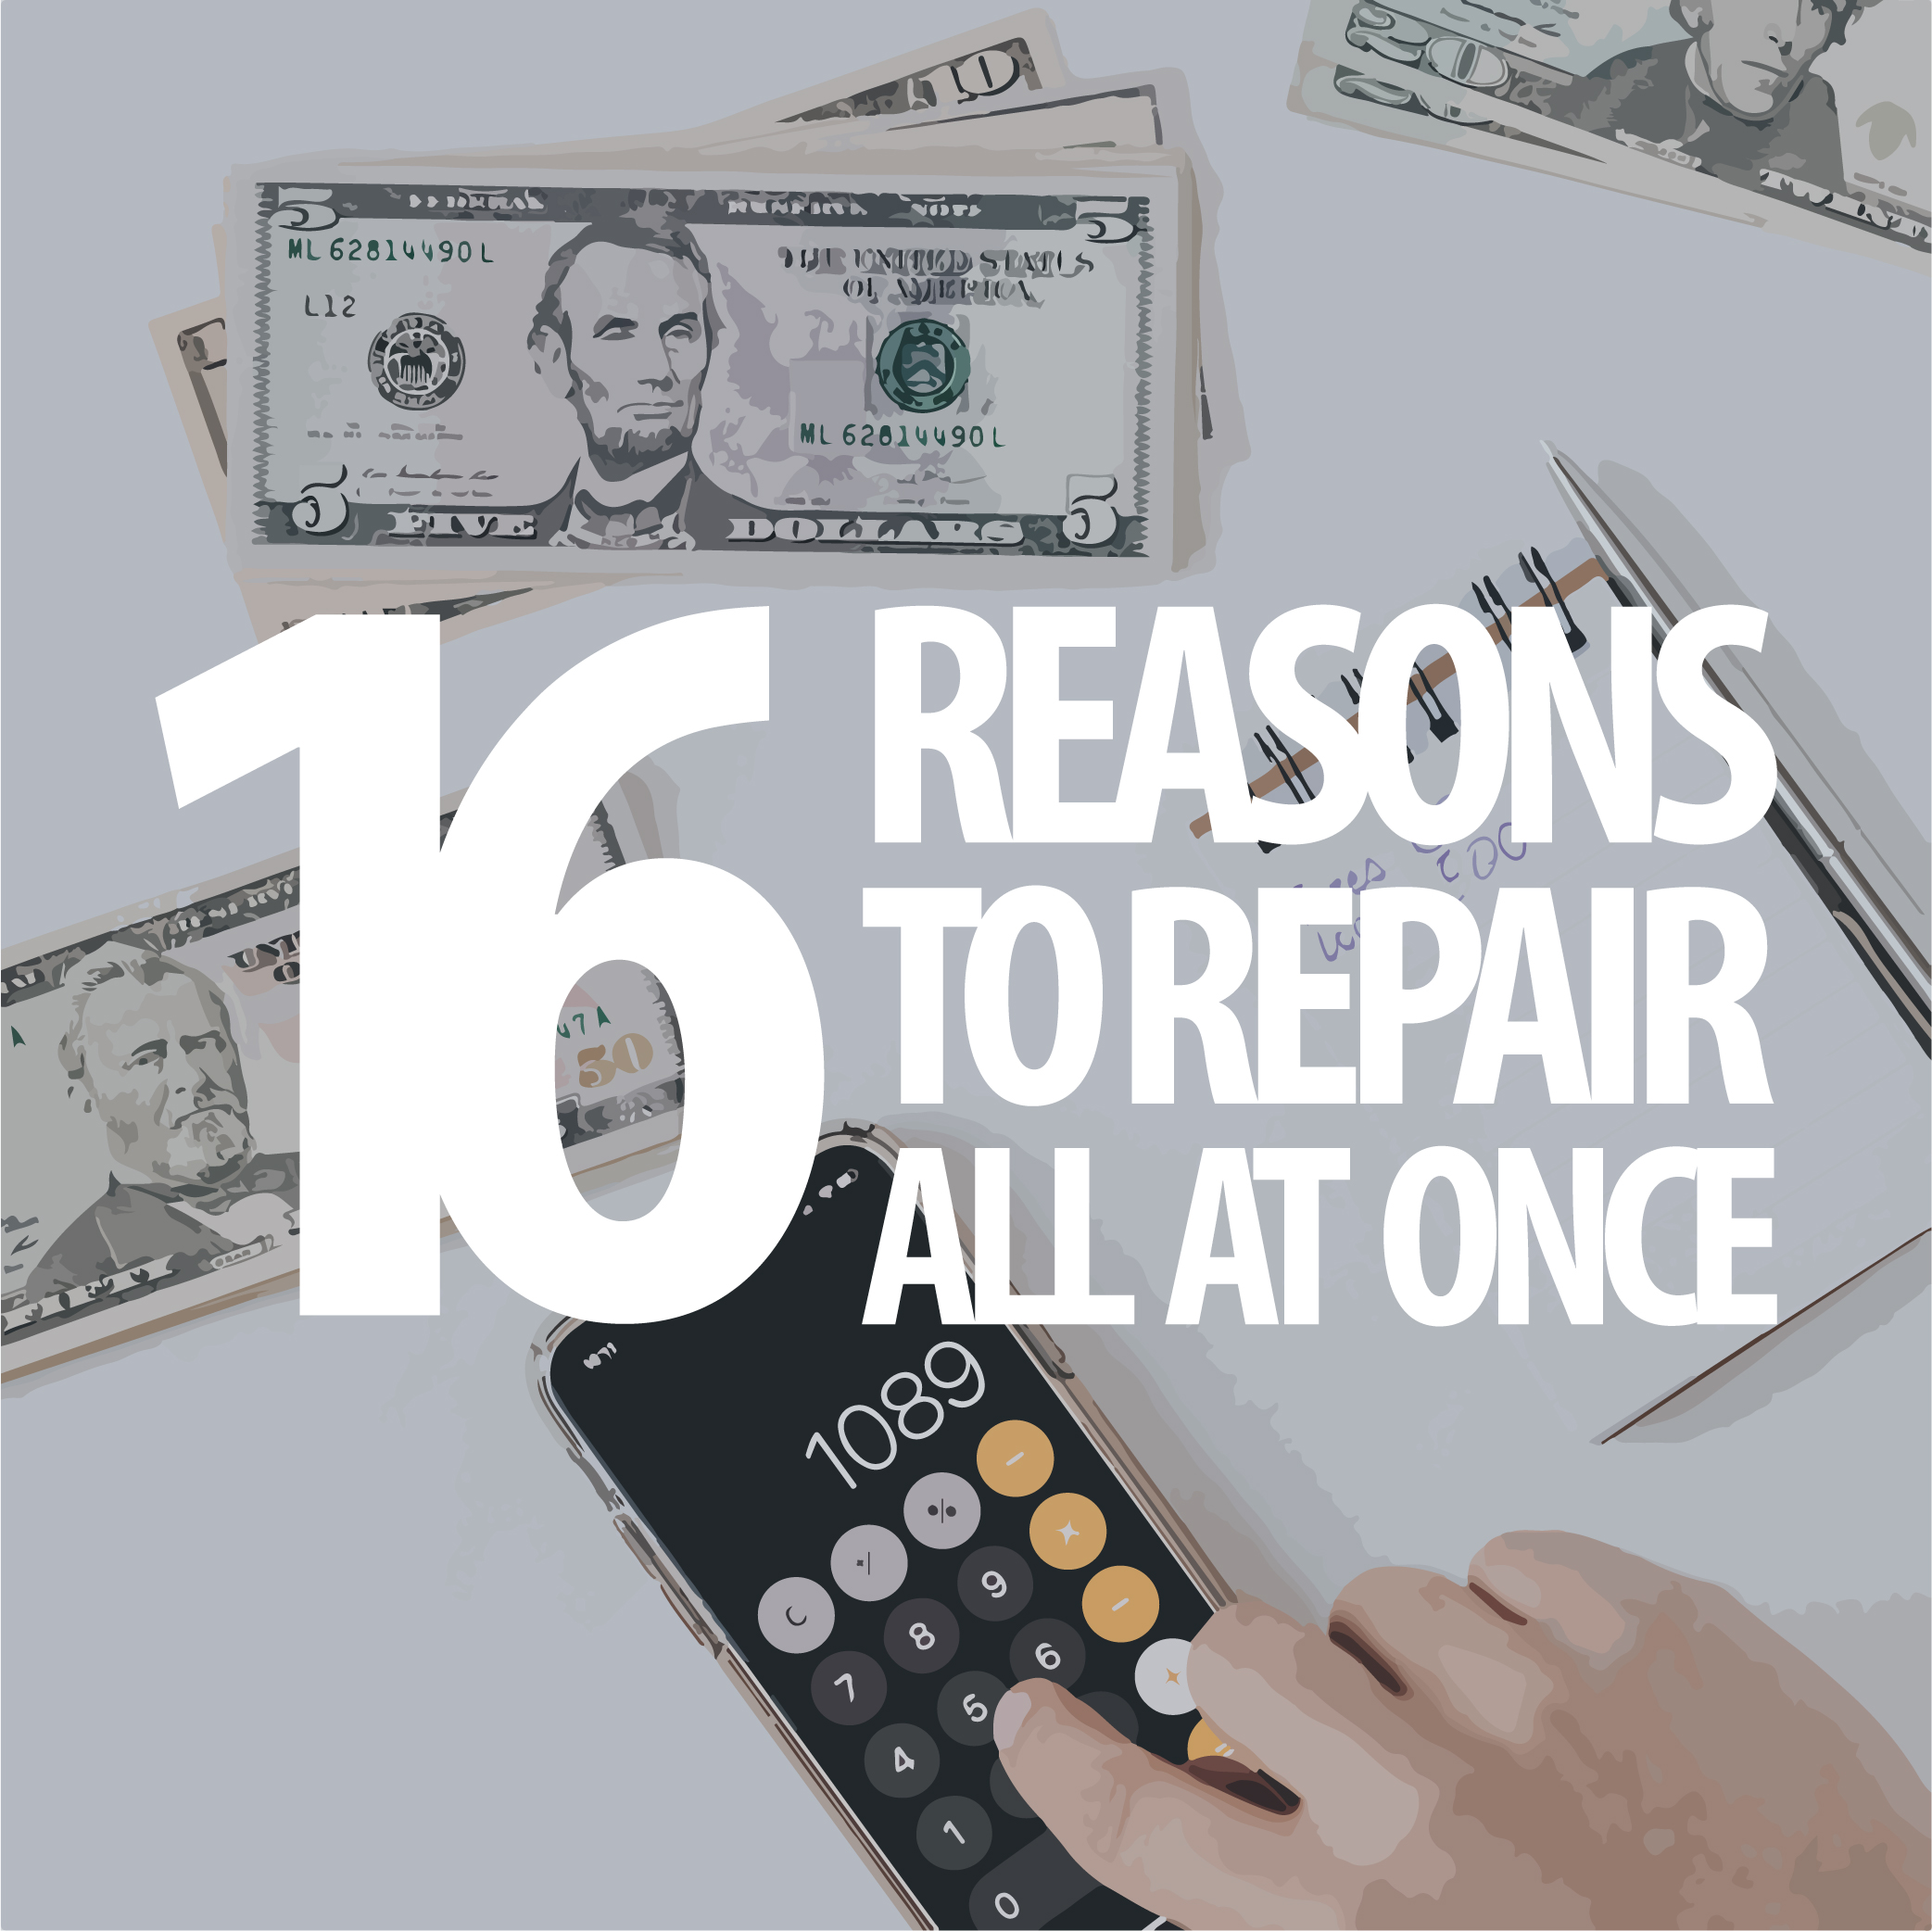 16 Reasons to Repair All At Once